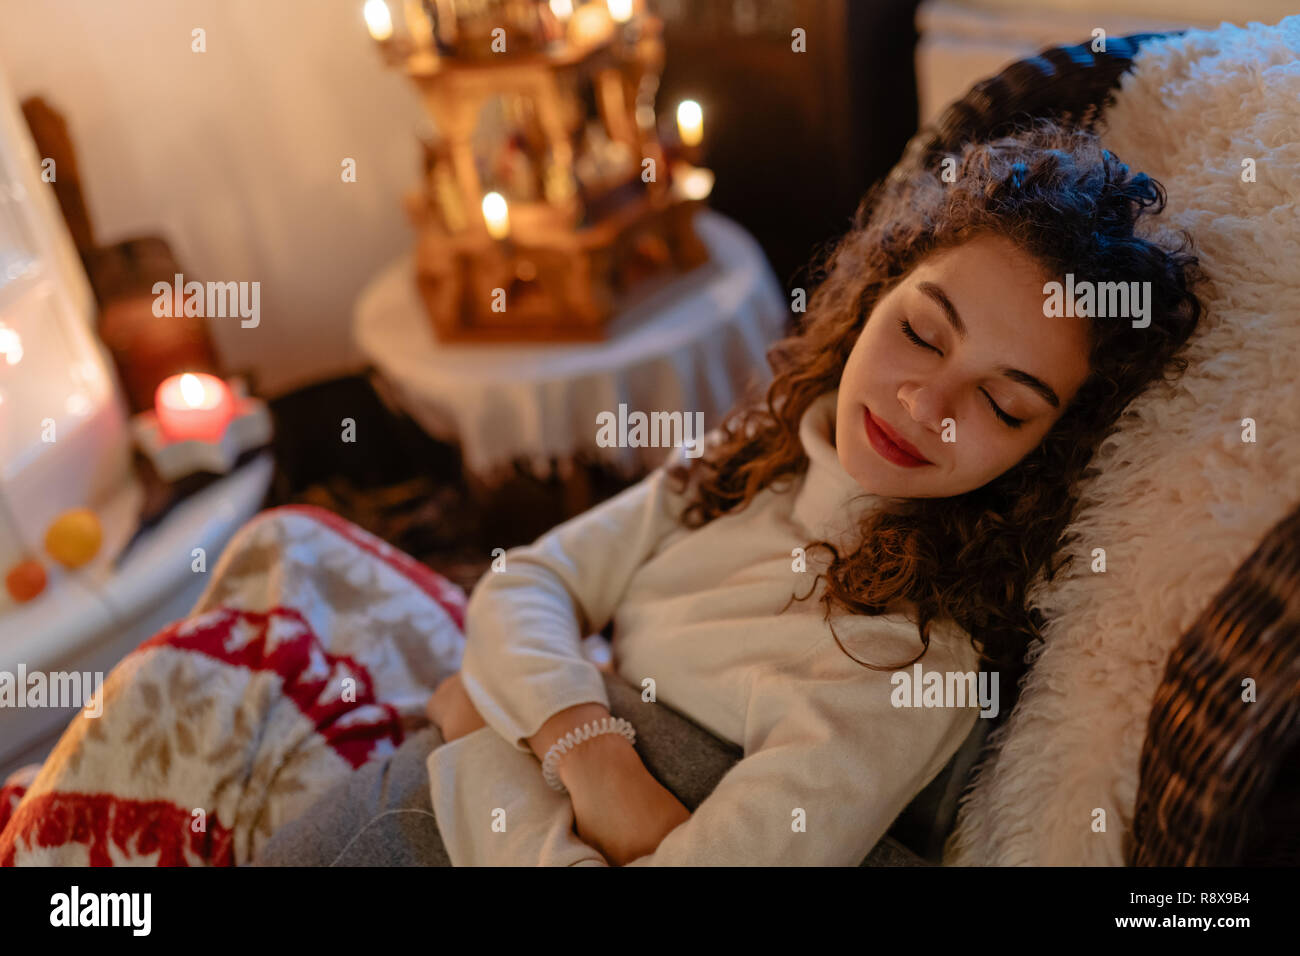 Beautiful young woman with curly hair is taking a nap with Christmas lights in the background - Stock Image